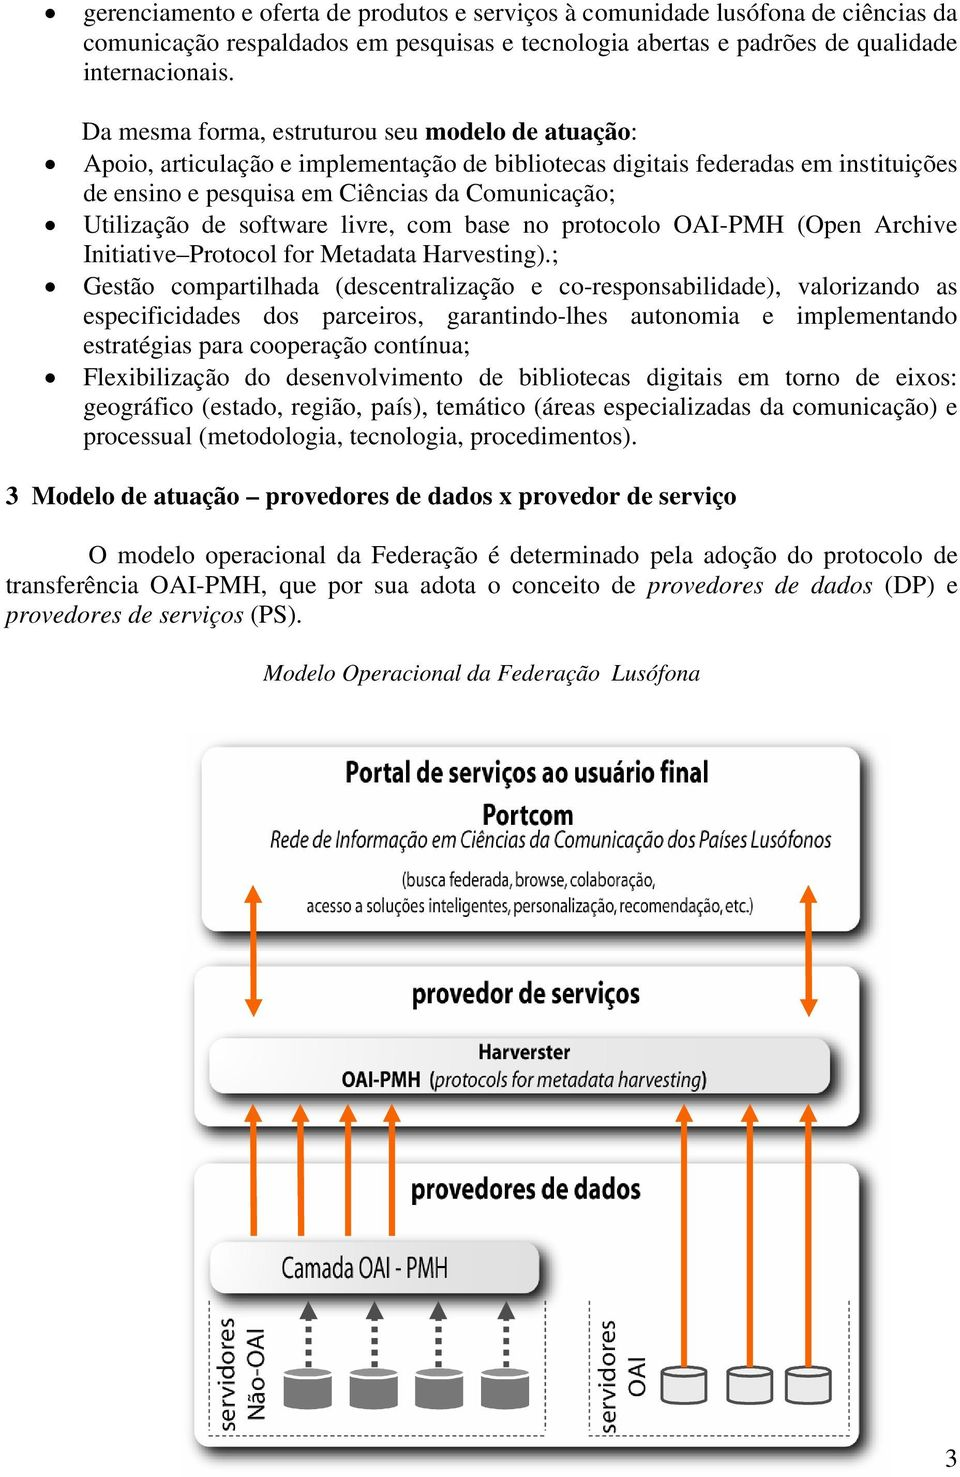 software livre, com base no protocolo OAI-PMH (Open Archive Initiative Protocol for Metadata Harvesting).